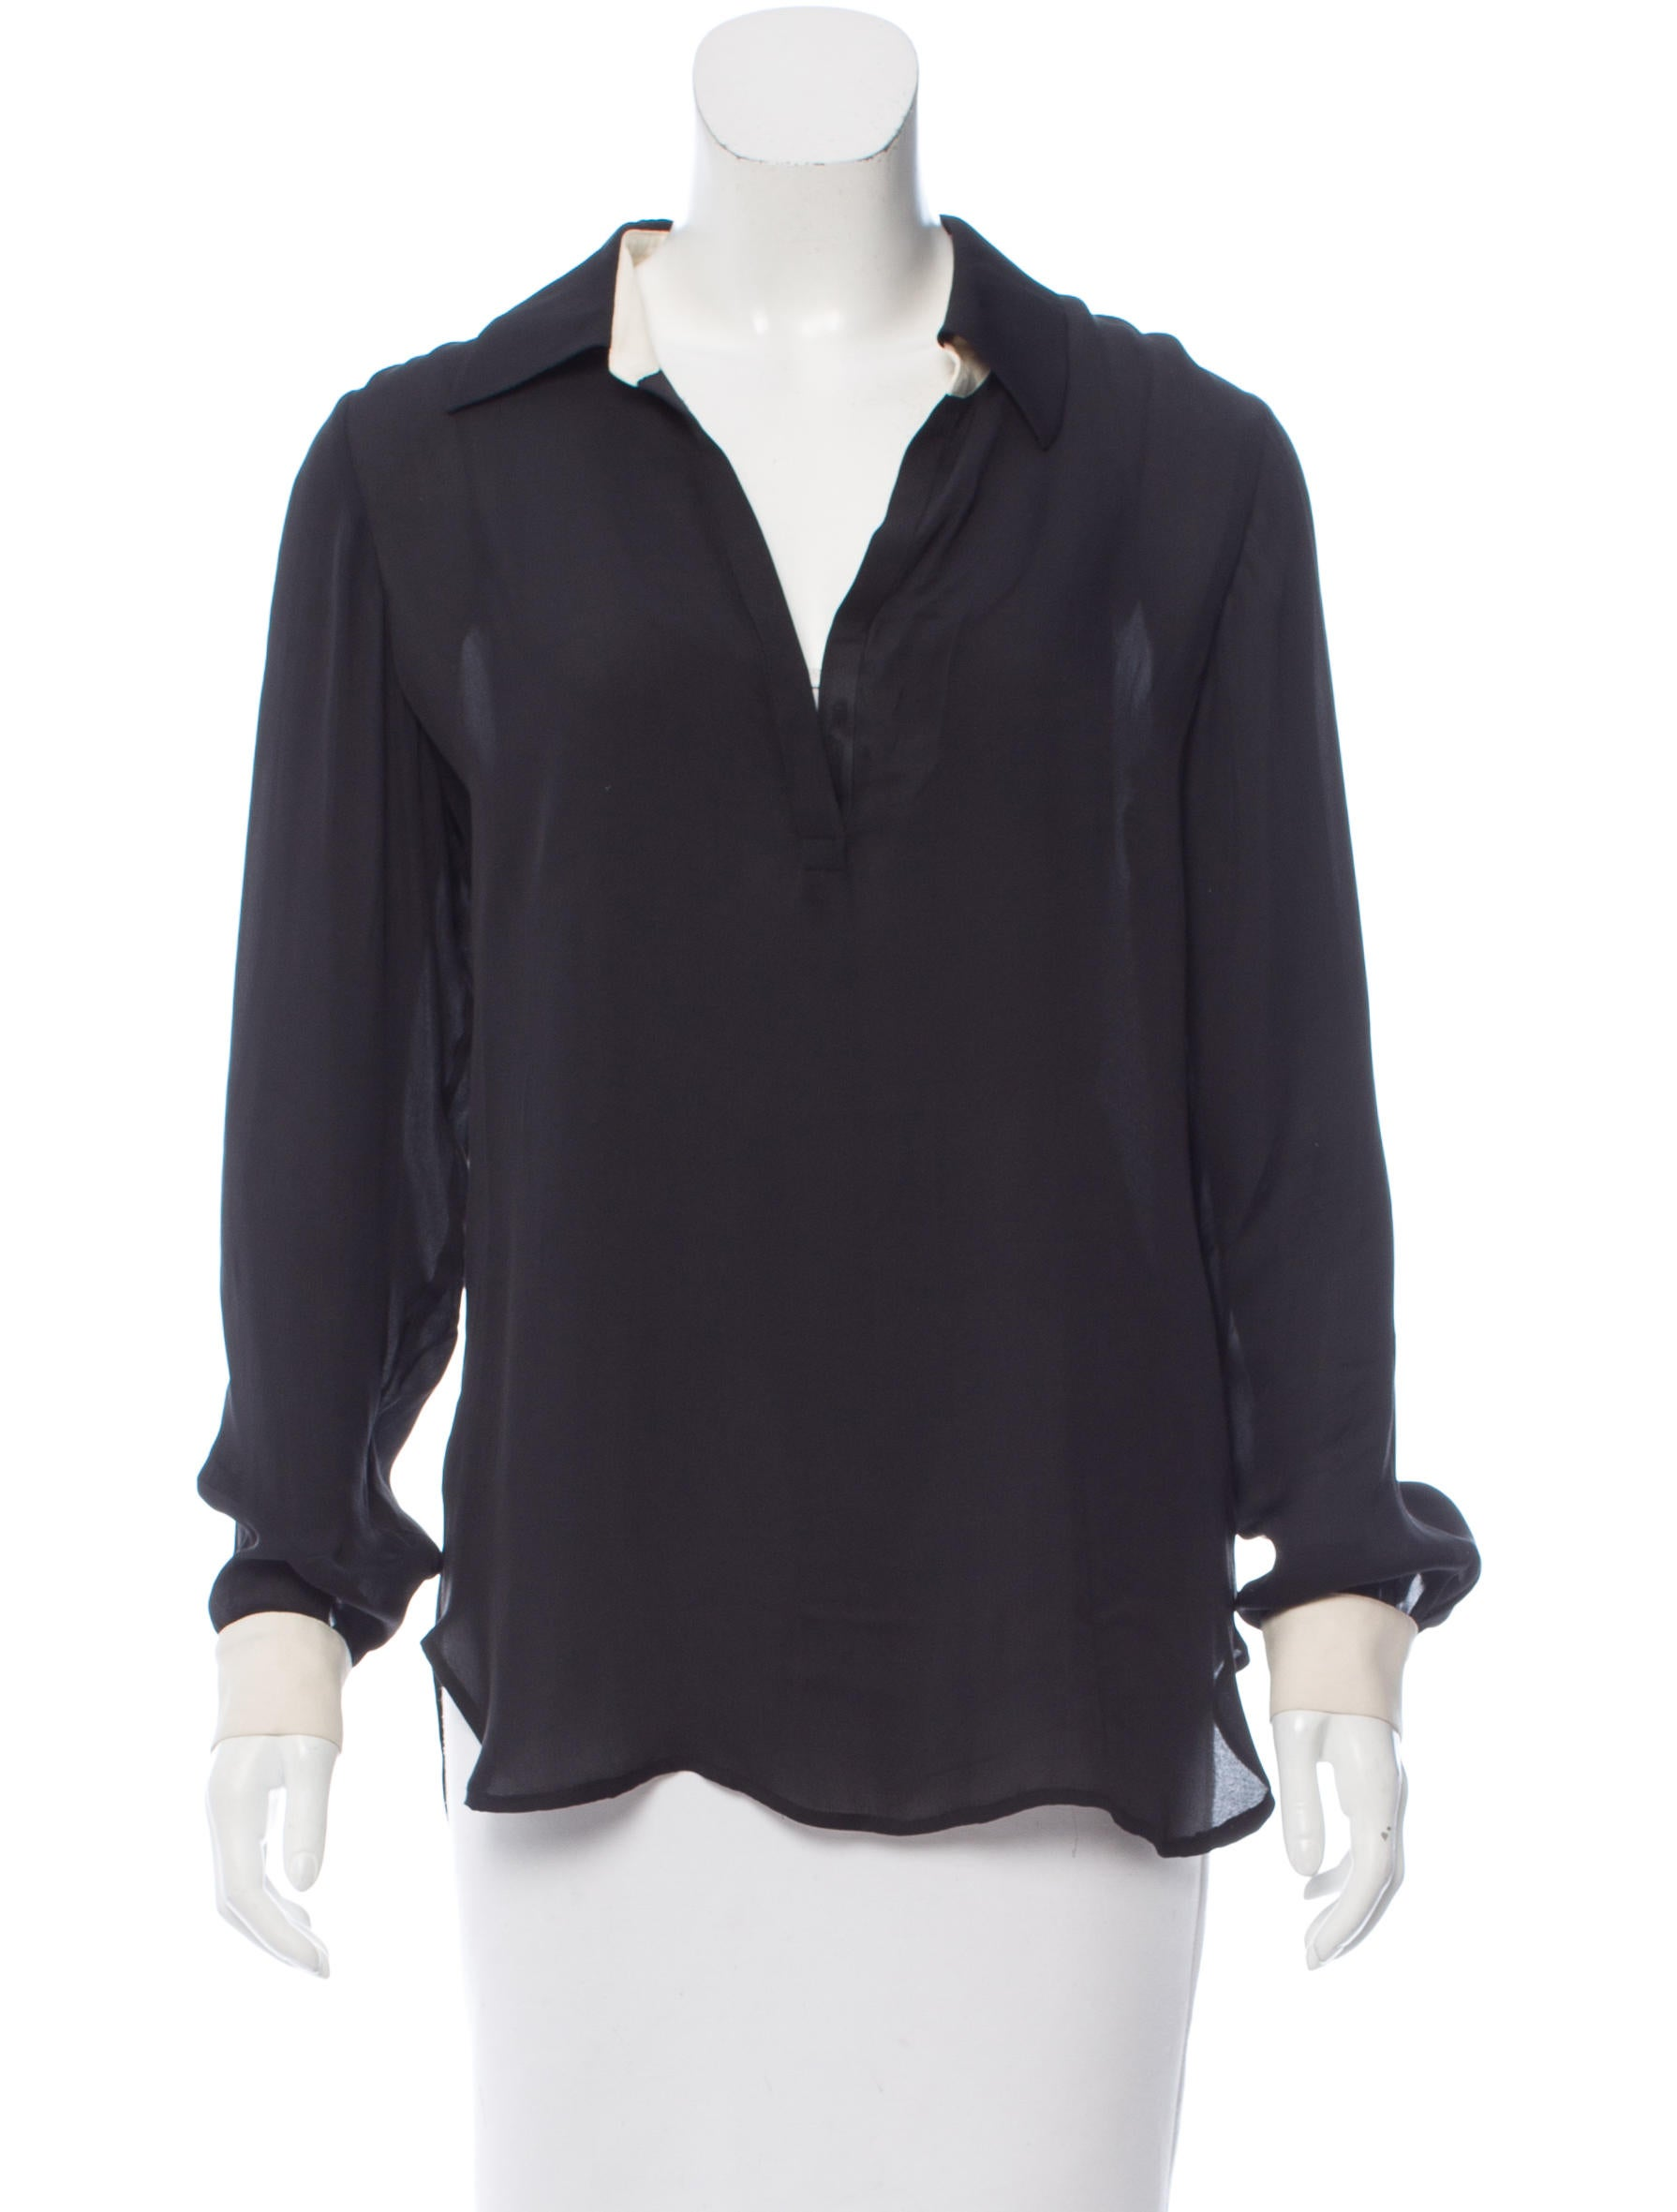 FREE SHIPPING on orders over $ FREE RETURNS in store. This soft silk shirt will be your workday go-to. $